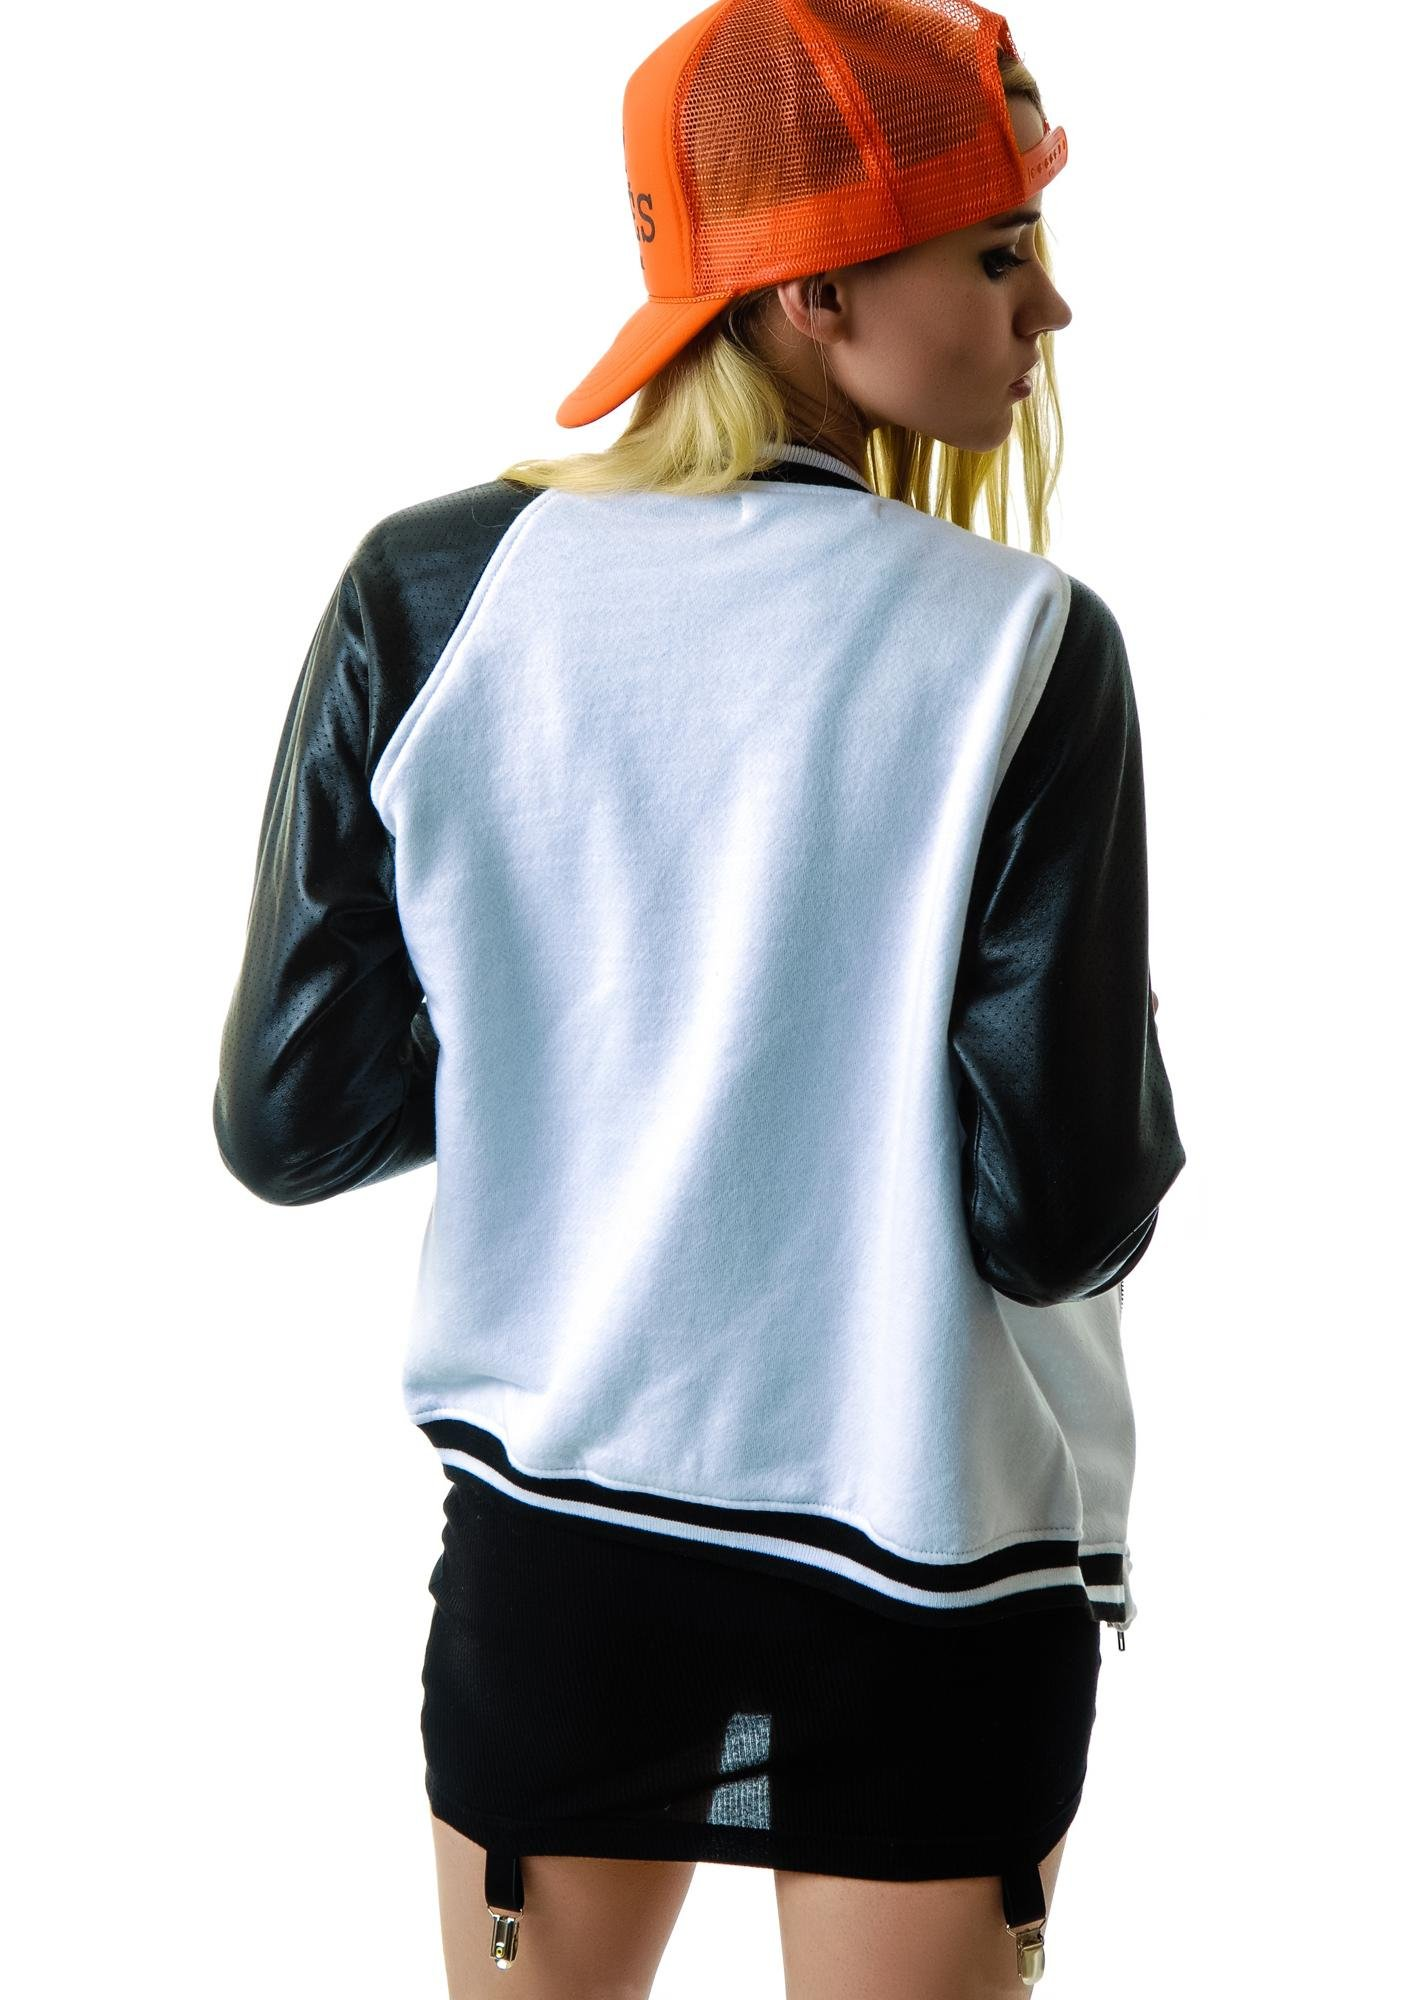 JET by John Eshaya Perforated Leather Baseball Jacket